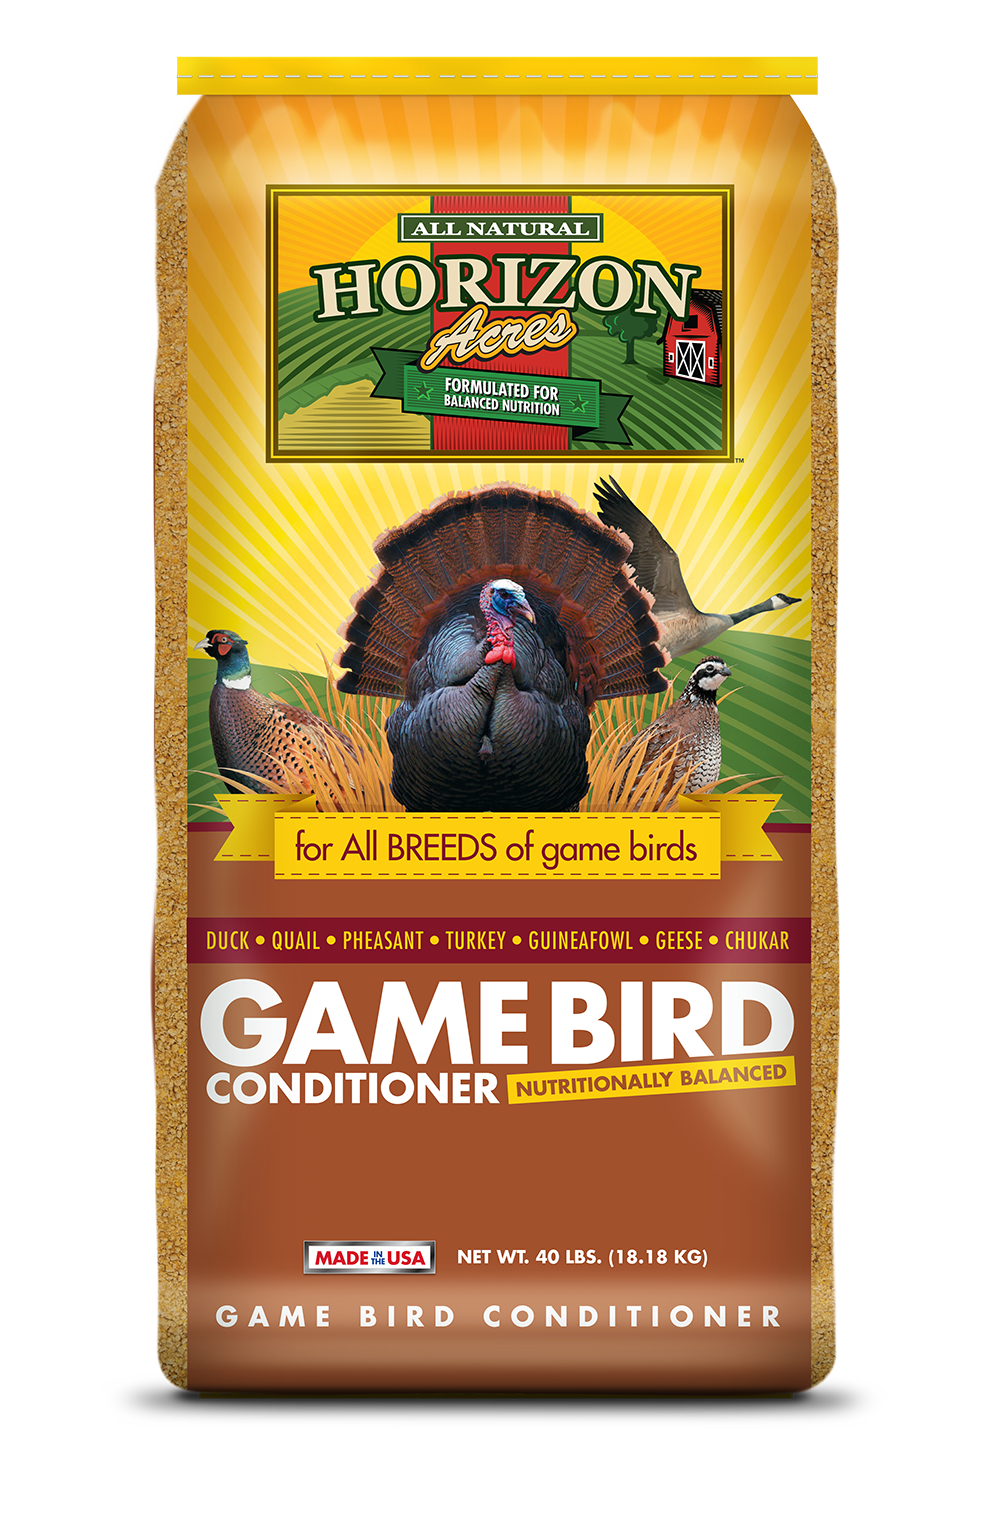 Horizon Acres Game Bird Conditioner Bag